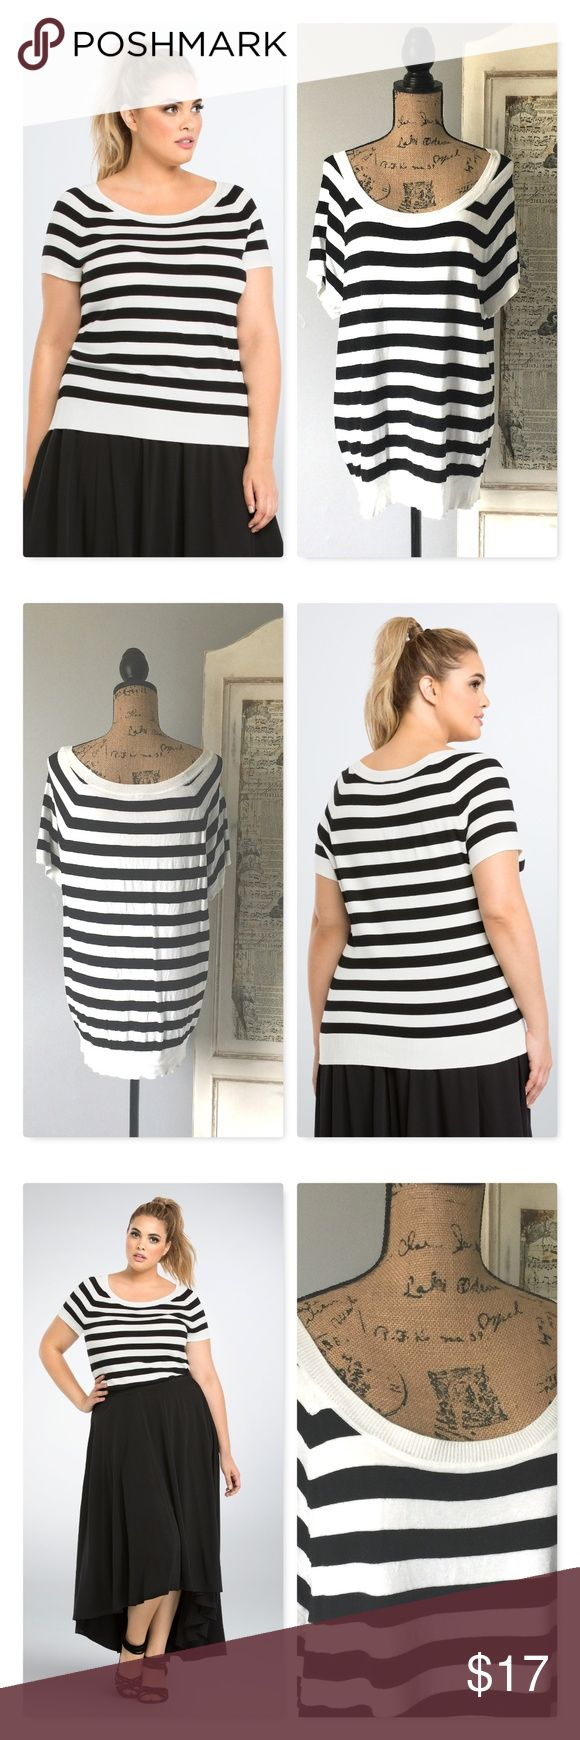 """Striped Pullover Top Lightweight Sweater Sz 2 A Parisian-inspired pullover top that's sure to charm, this short sleeved black and white striped knit style is très chic. A form fit with ribbed trim, a stretchy ribbed collar creates a deeper scoop neckline.  Model is 5'10"""" and wearing a Size 1.  I am selling a size 2.  Measures 28"""" in length.  Torrid Size Chart in last photo. Rayon/nylon. Wash cold, dry flat  #lisamariesvibe #torrid #plussize #curvy #striped #2x torrid Tops"""